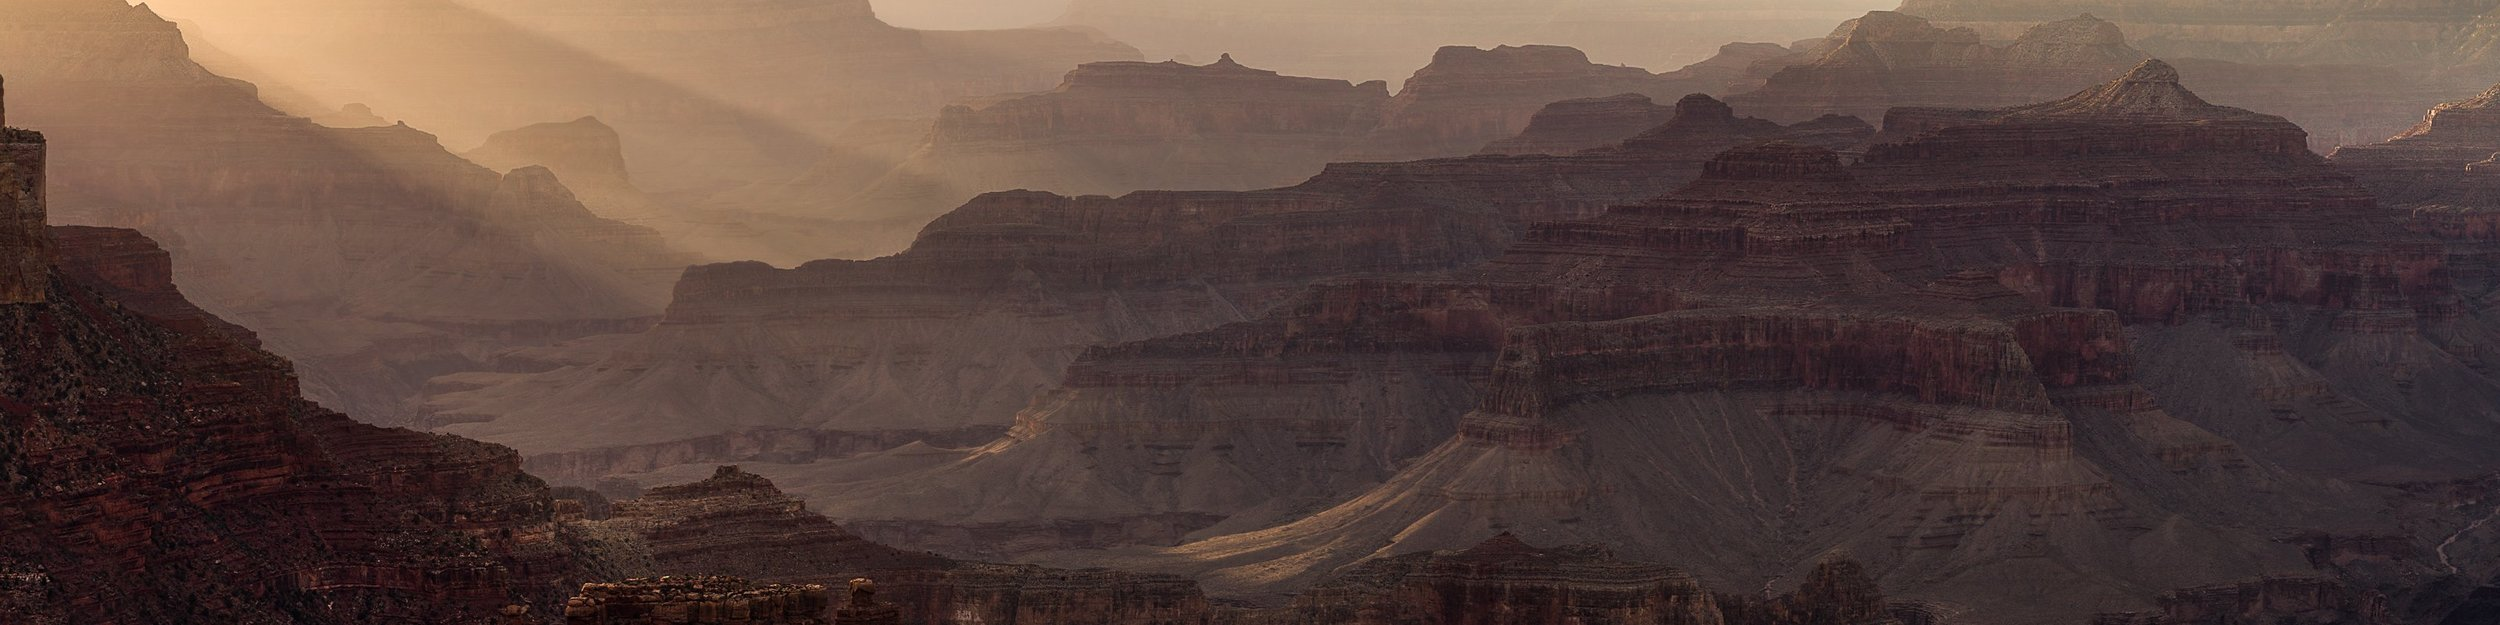 Grand Canyon at Sunset from Yavapai Point.